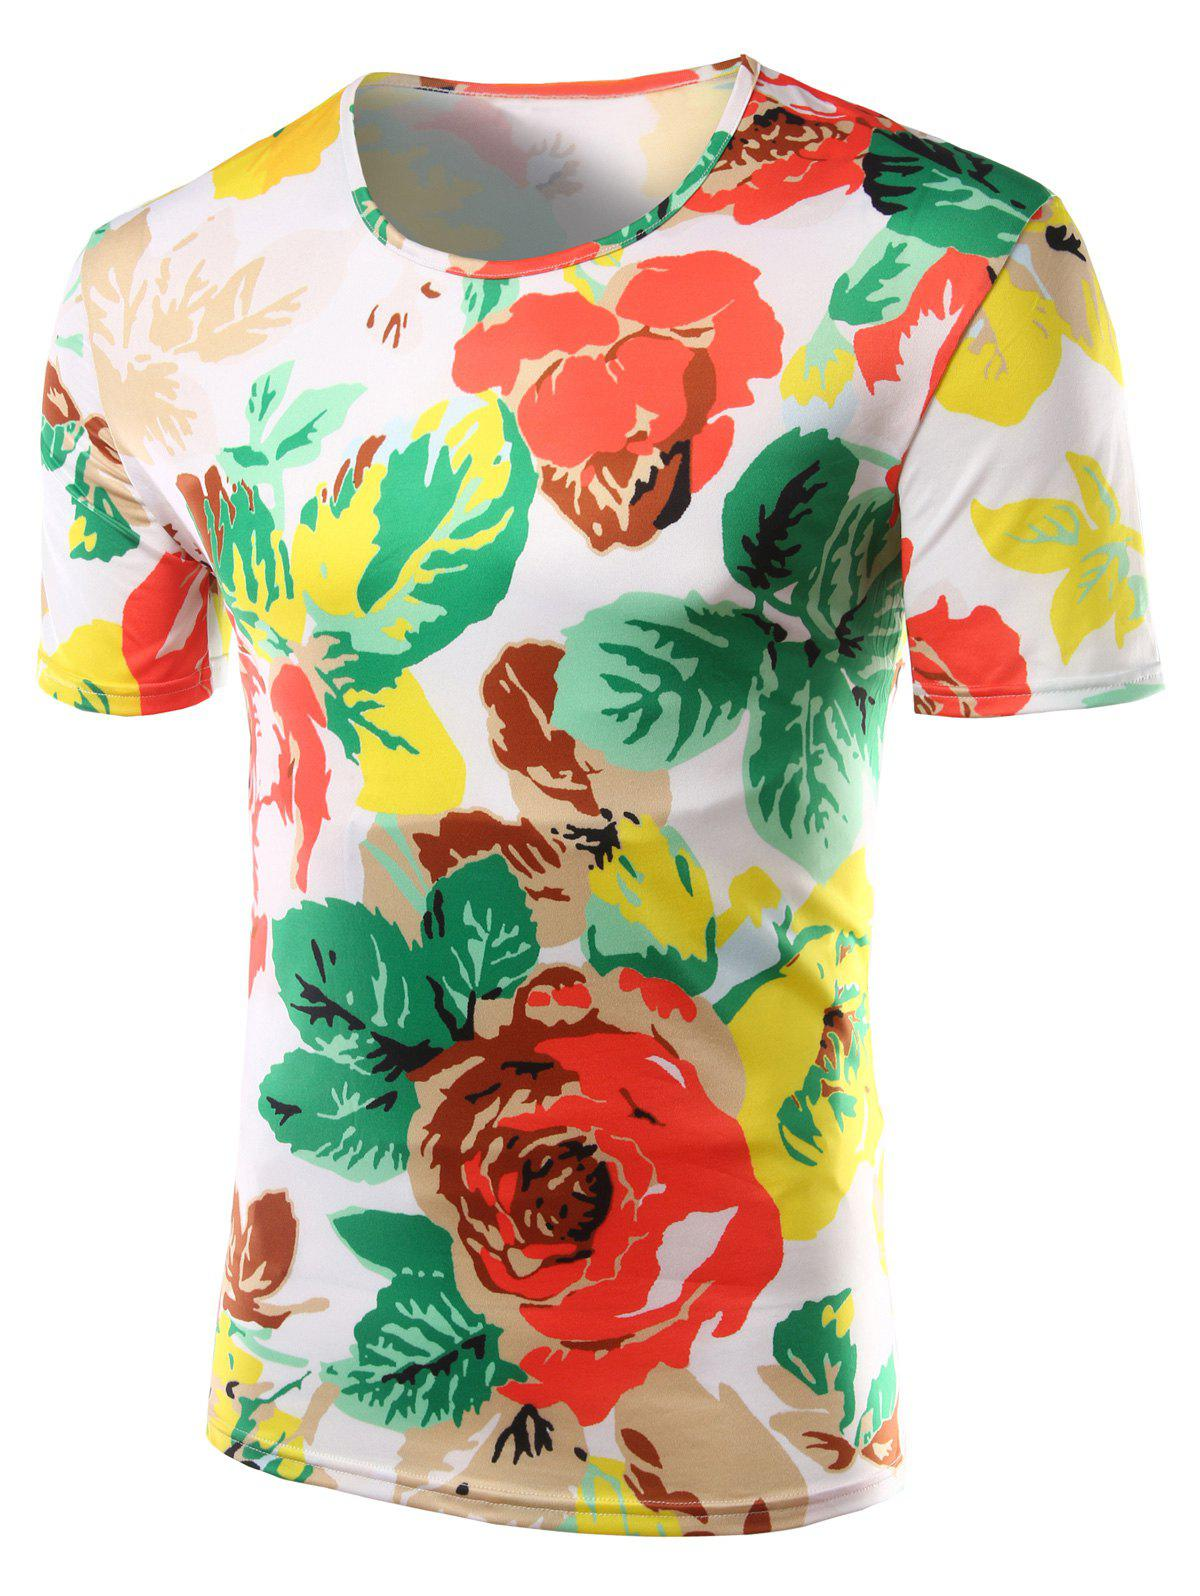 Slim Fit Flower Printed Round Collar Short Sleeves T-Shirts For Men